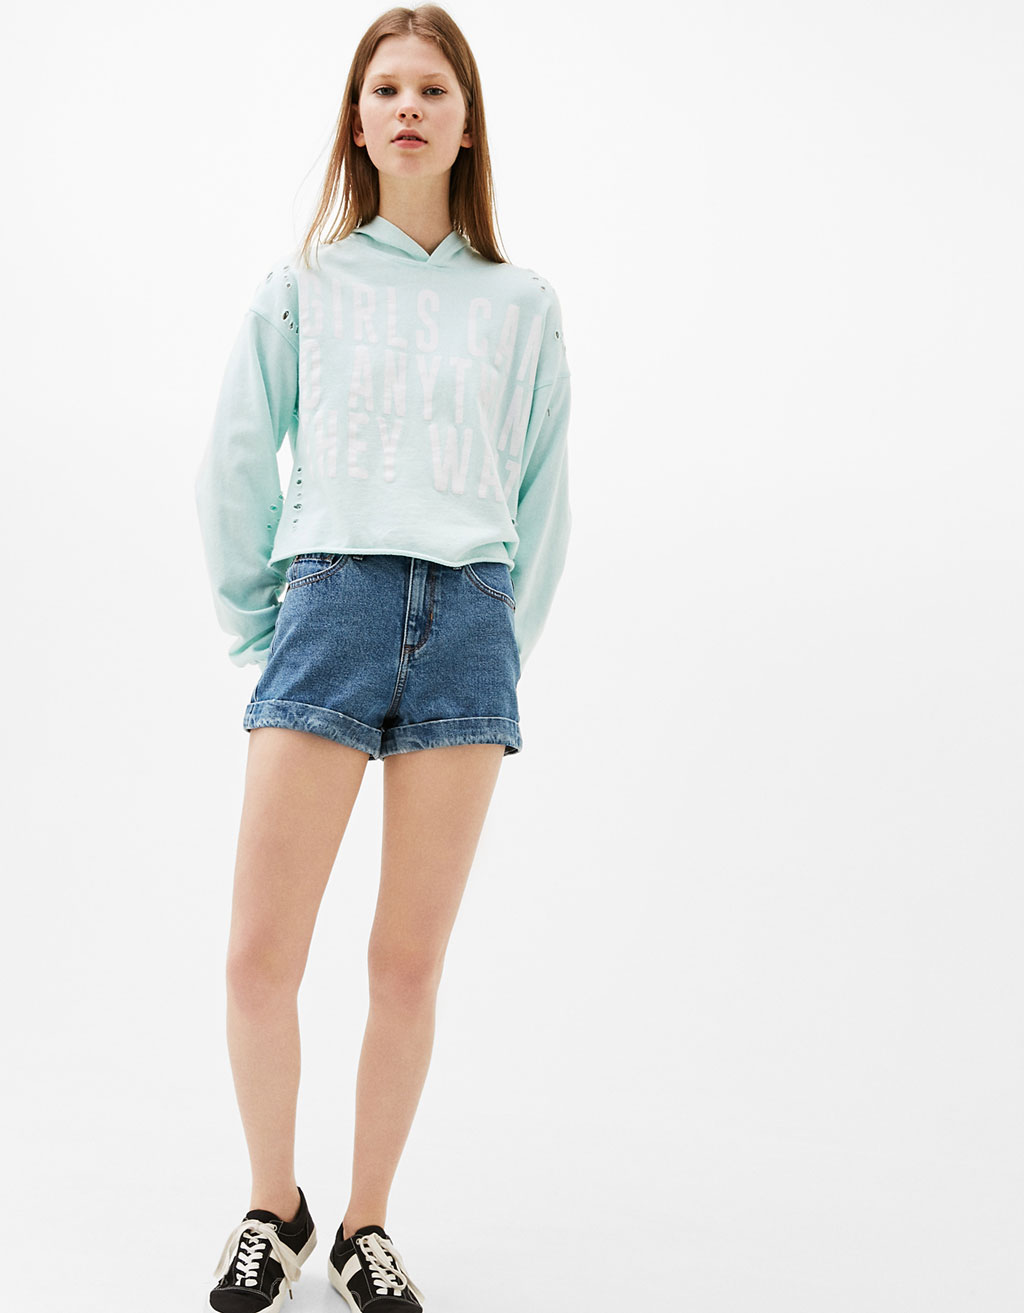 Shorts denim risvolto